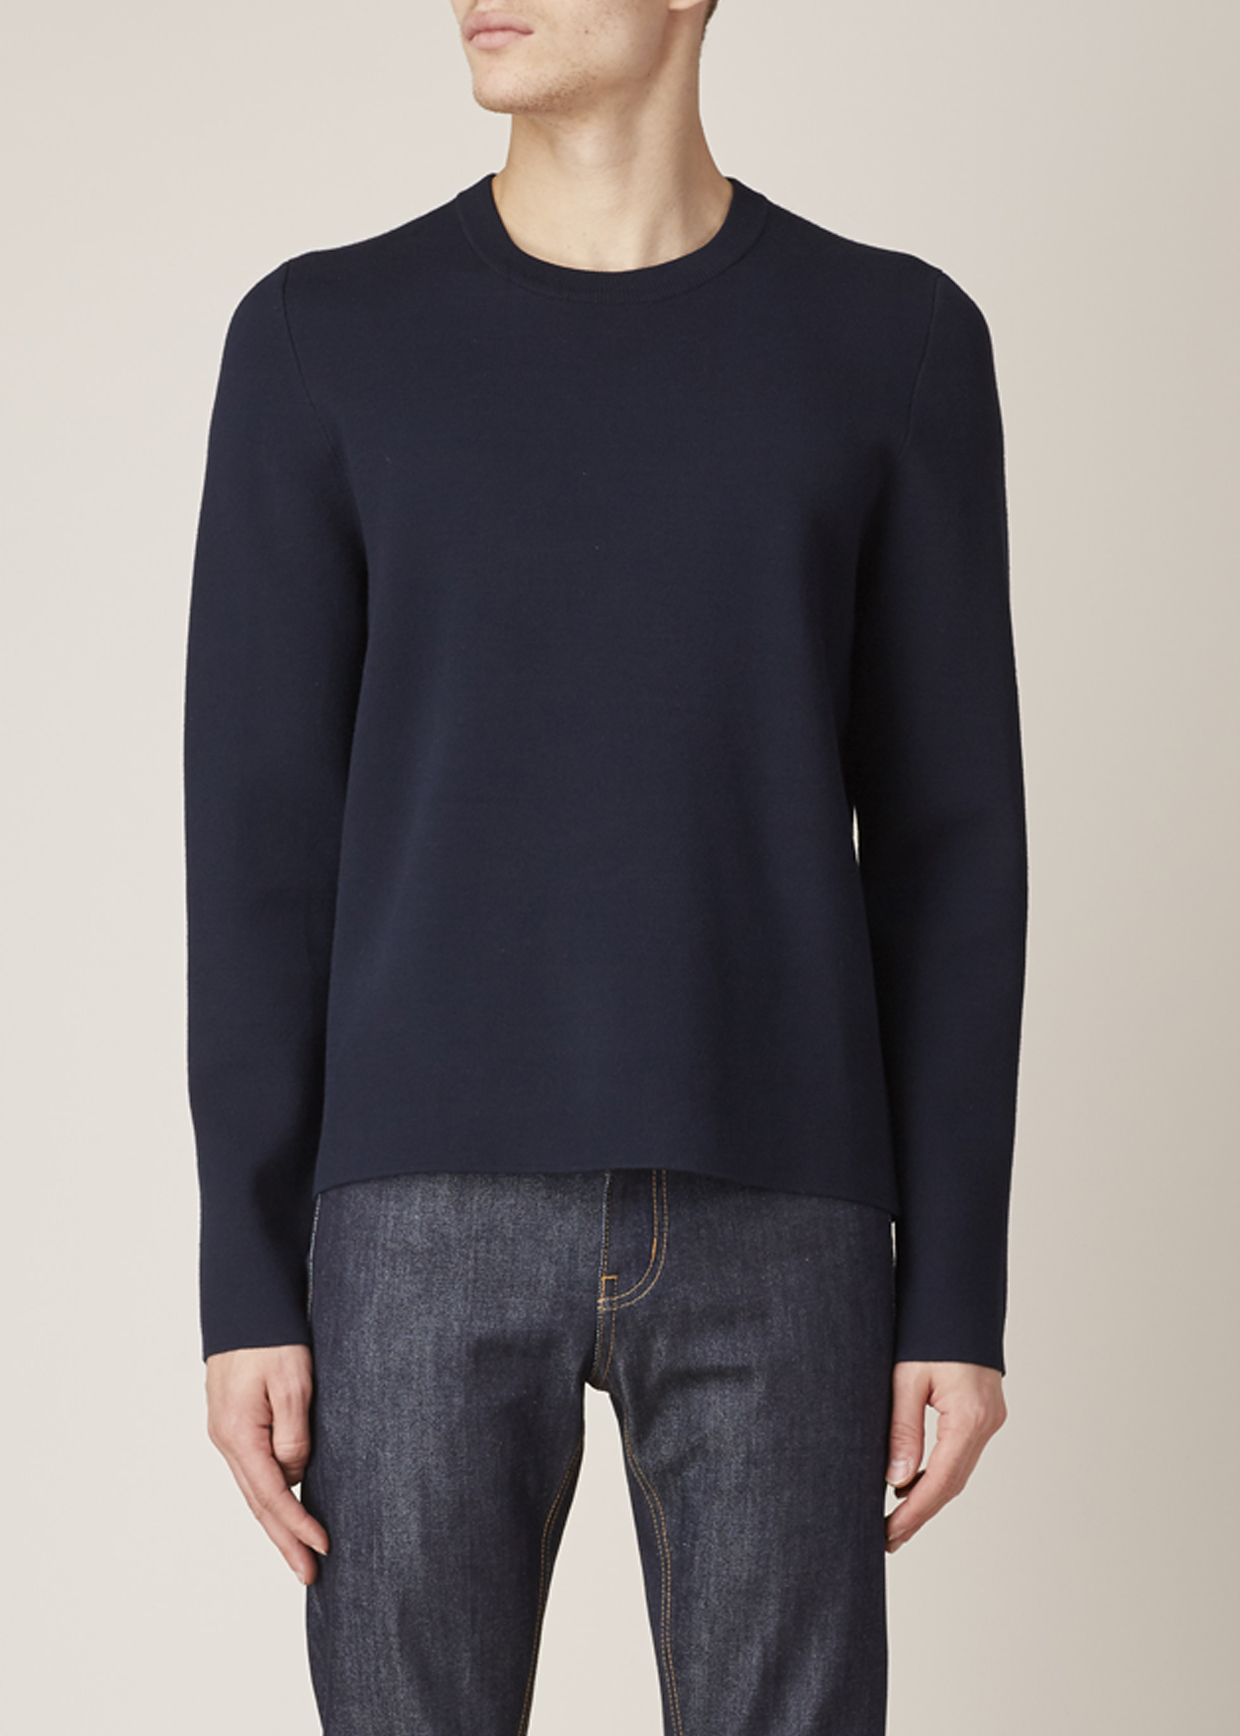 Acne studios Dark Navy Lang Sweater in Blue for Men | Lyst